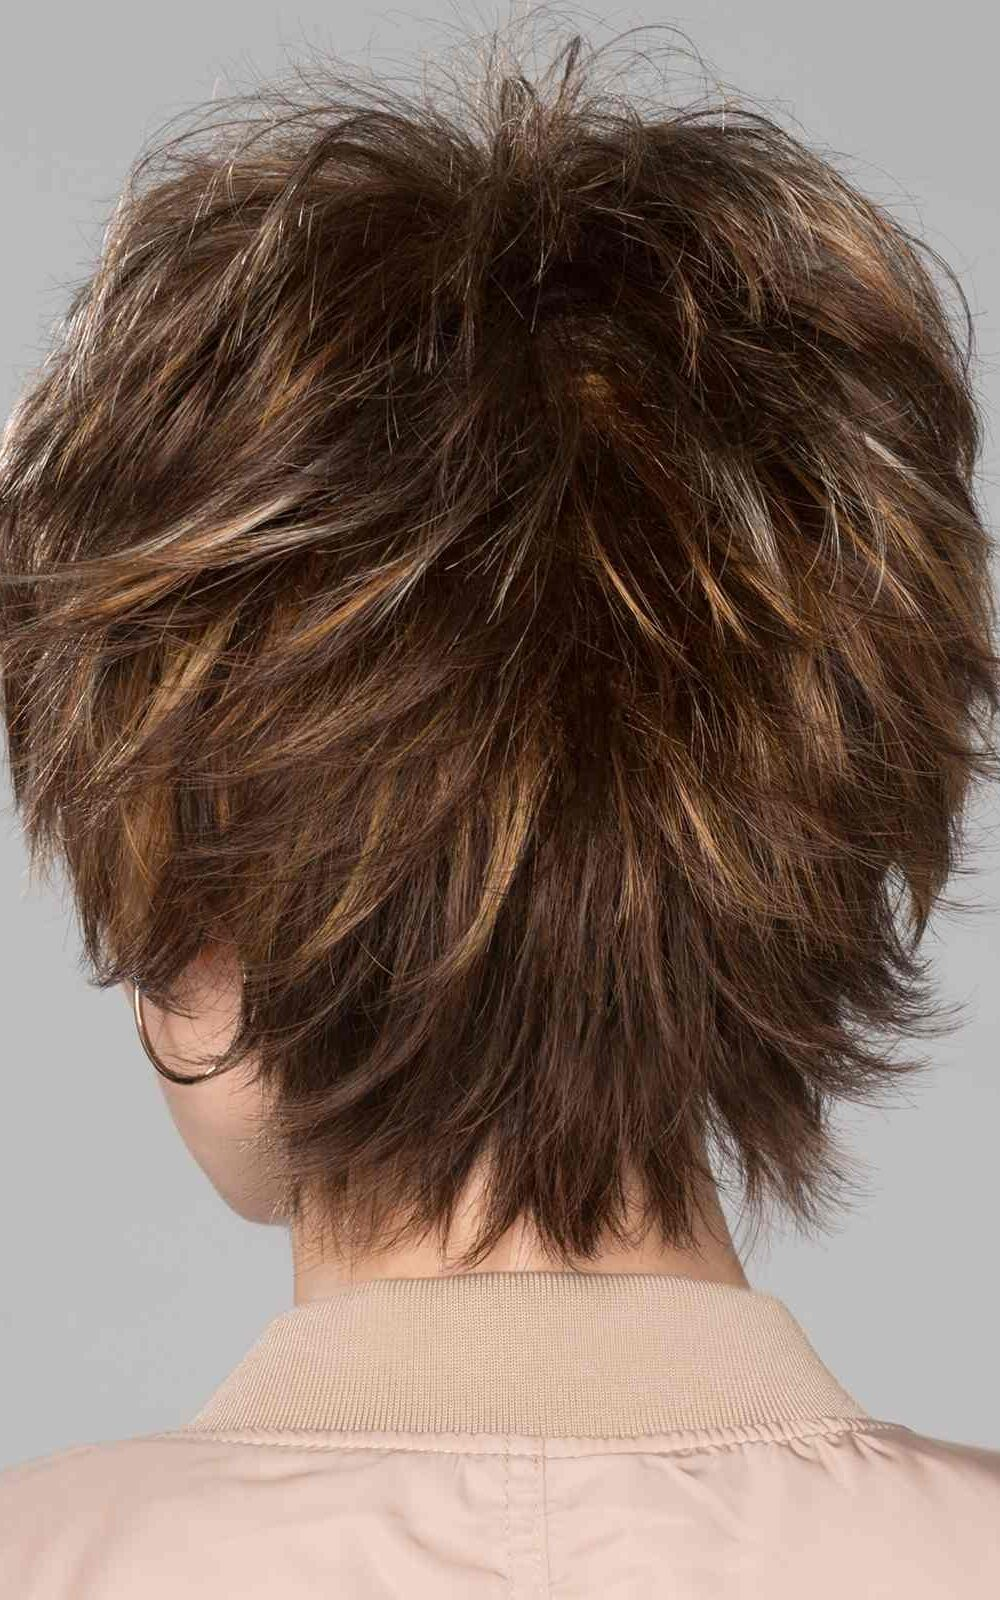 Click Wig by Ellen Wille   Tapered neckline layers blend the choppy crown length   Black   Elly-K.com.au